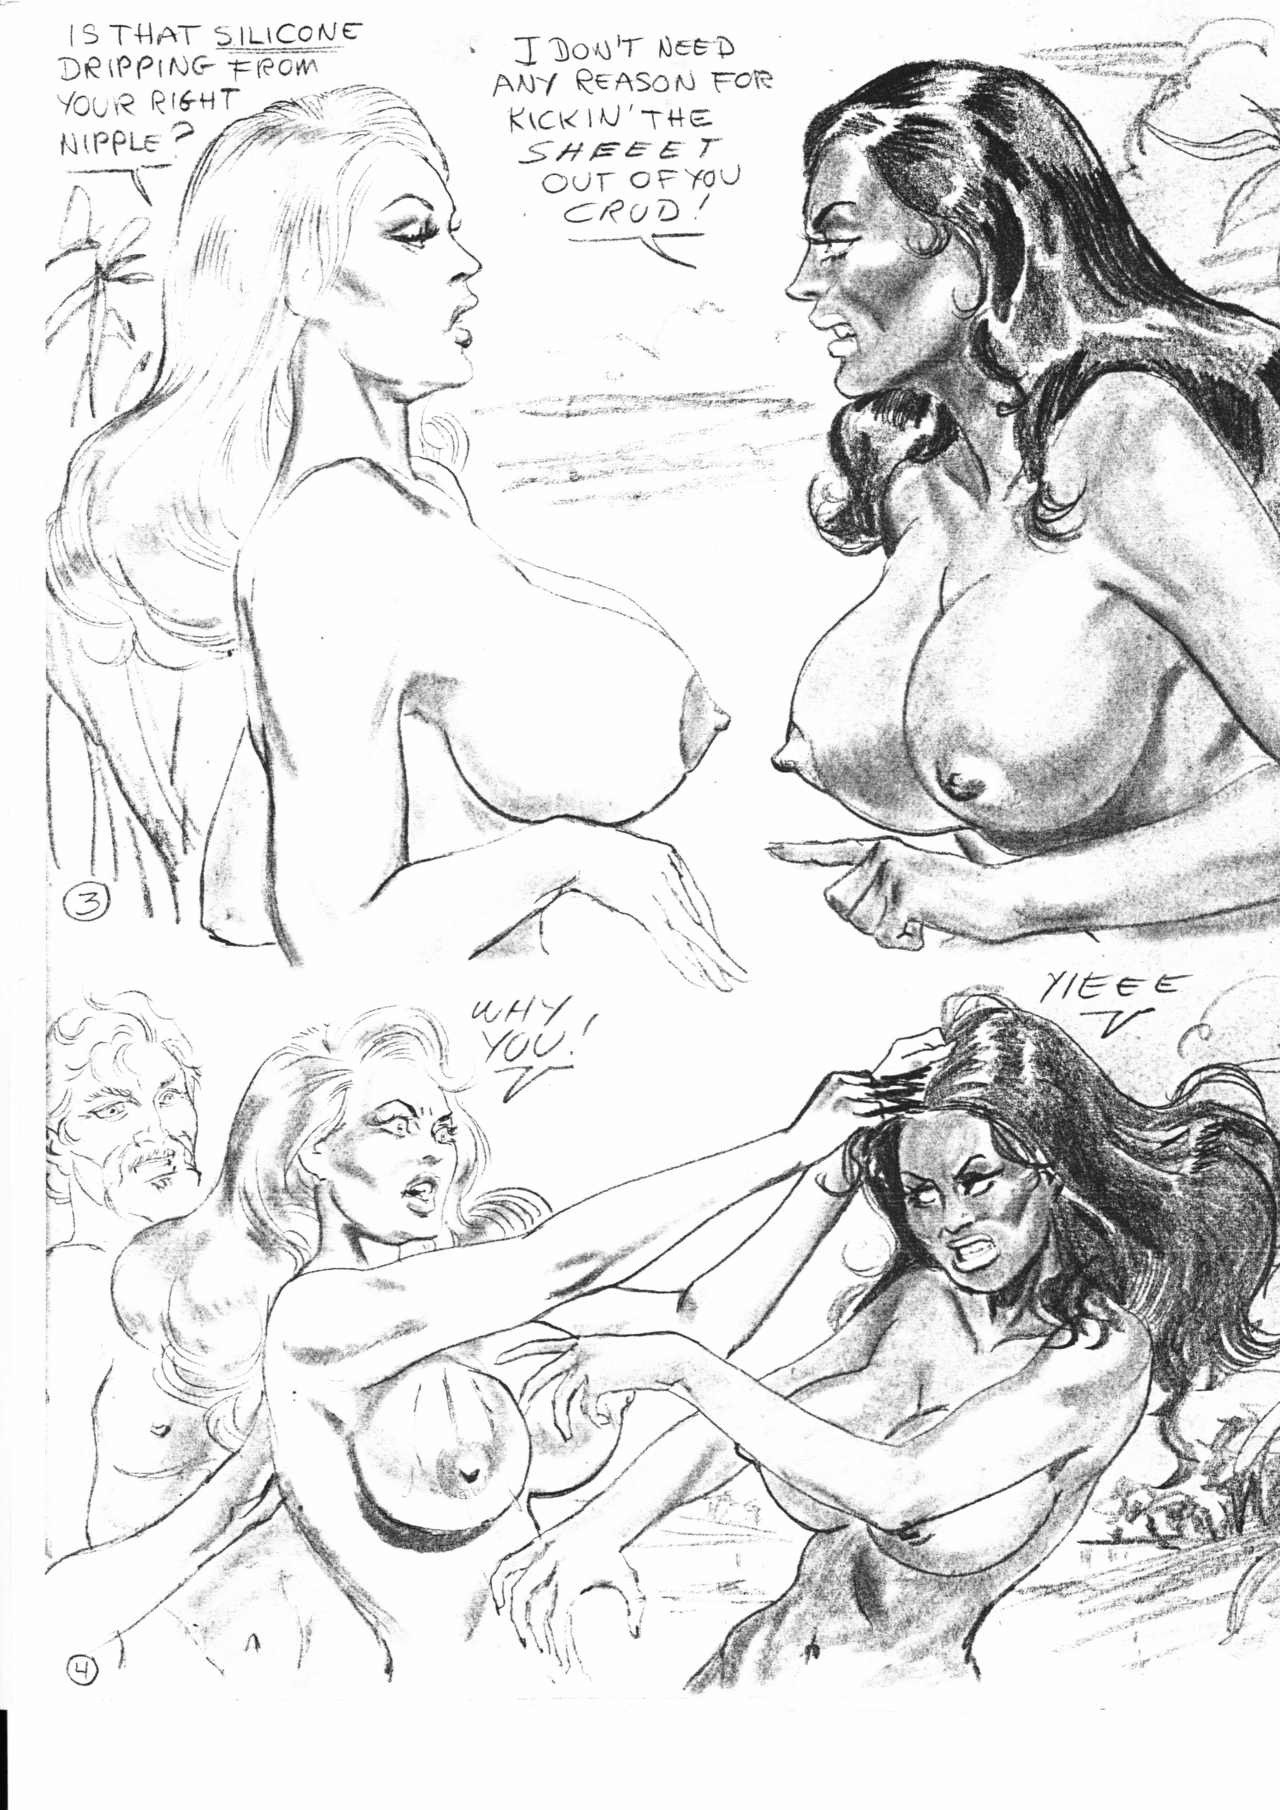 catfight drawings